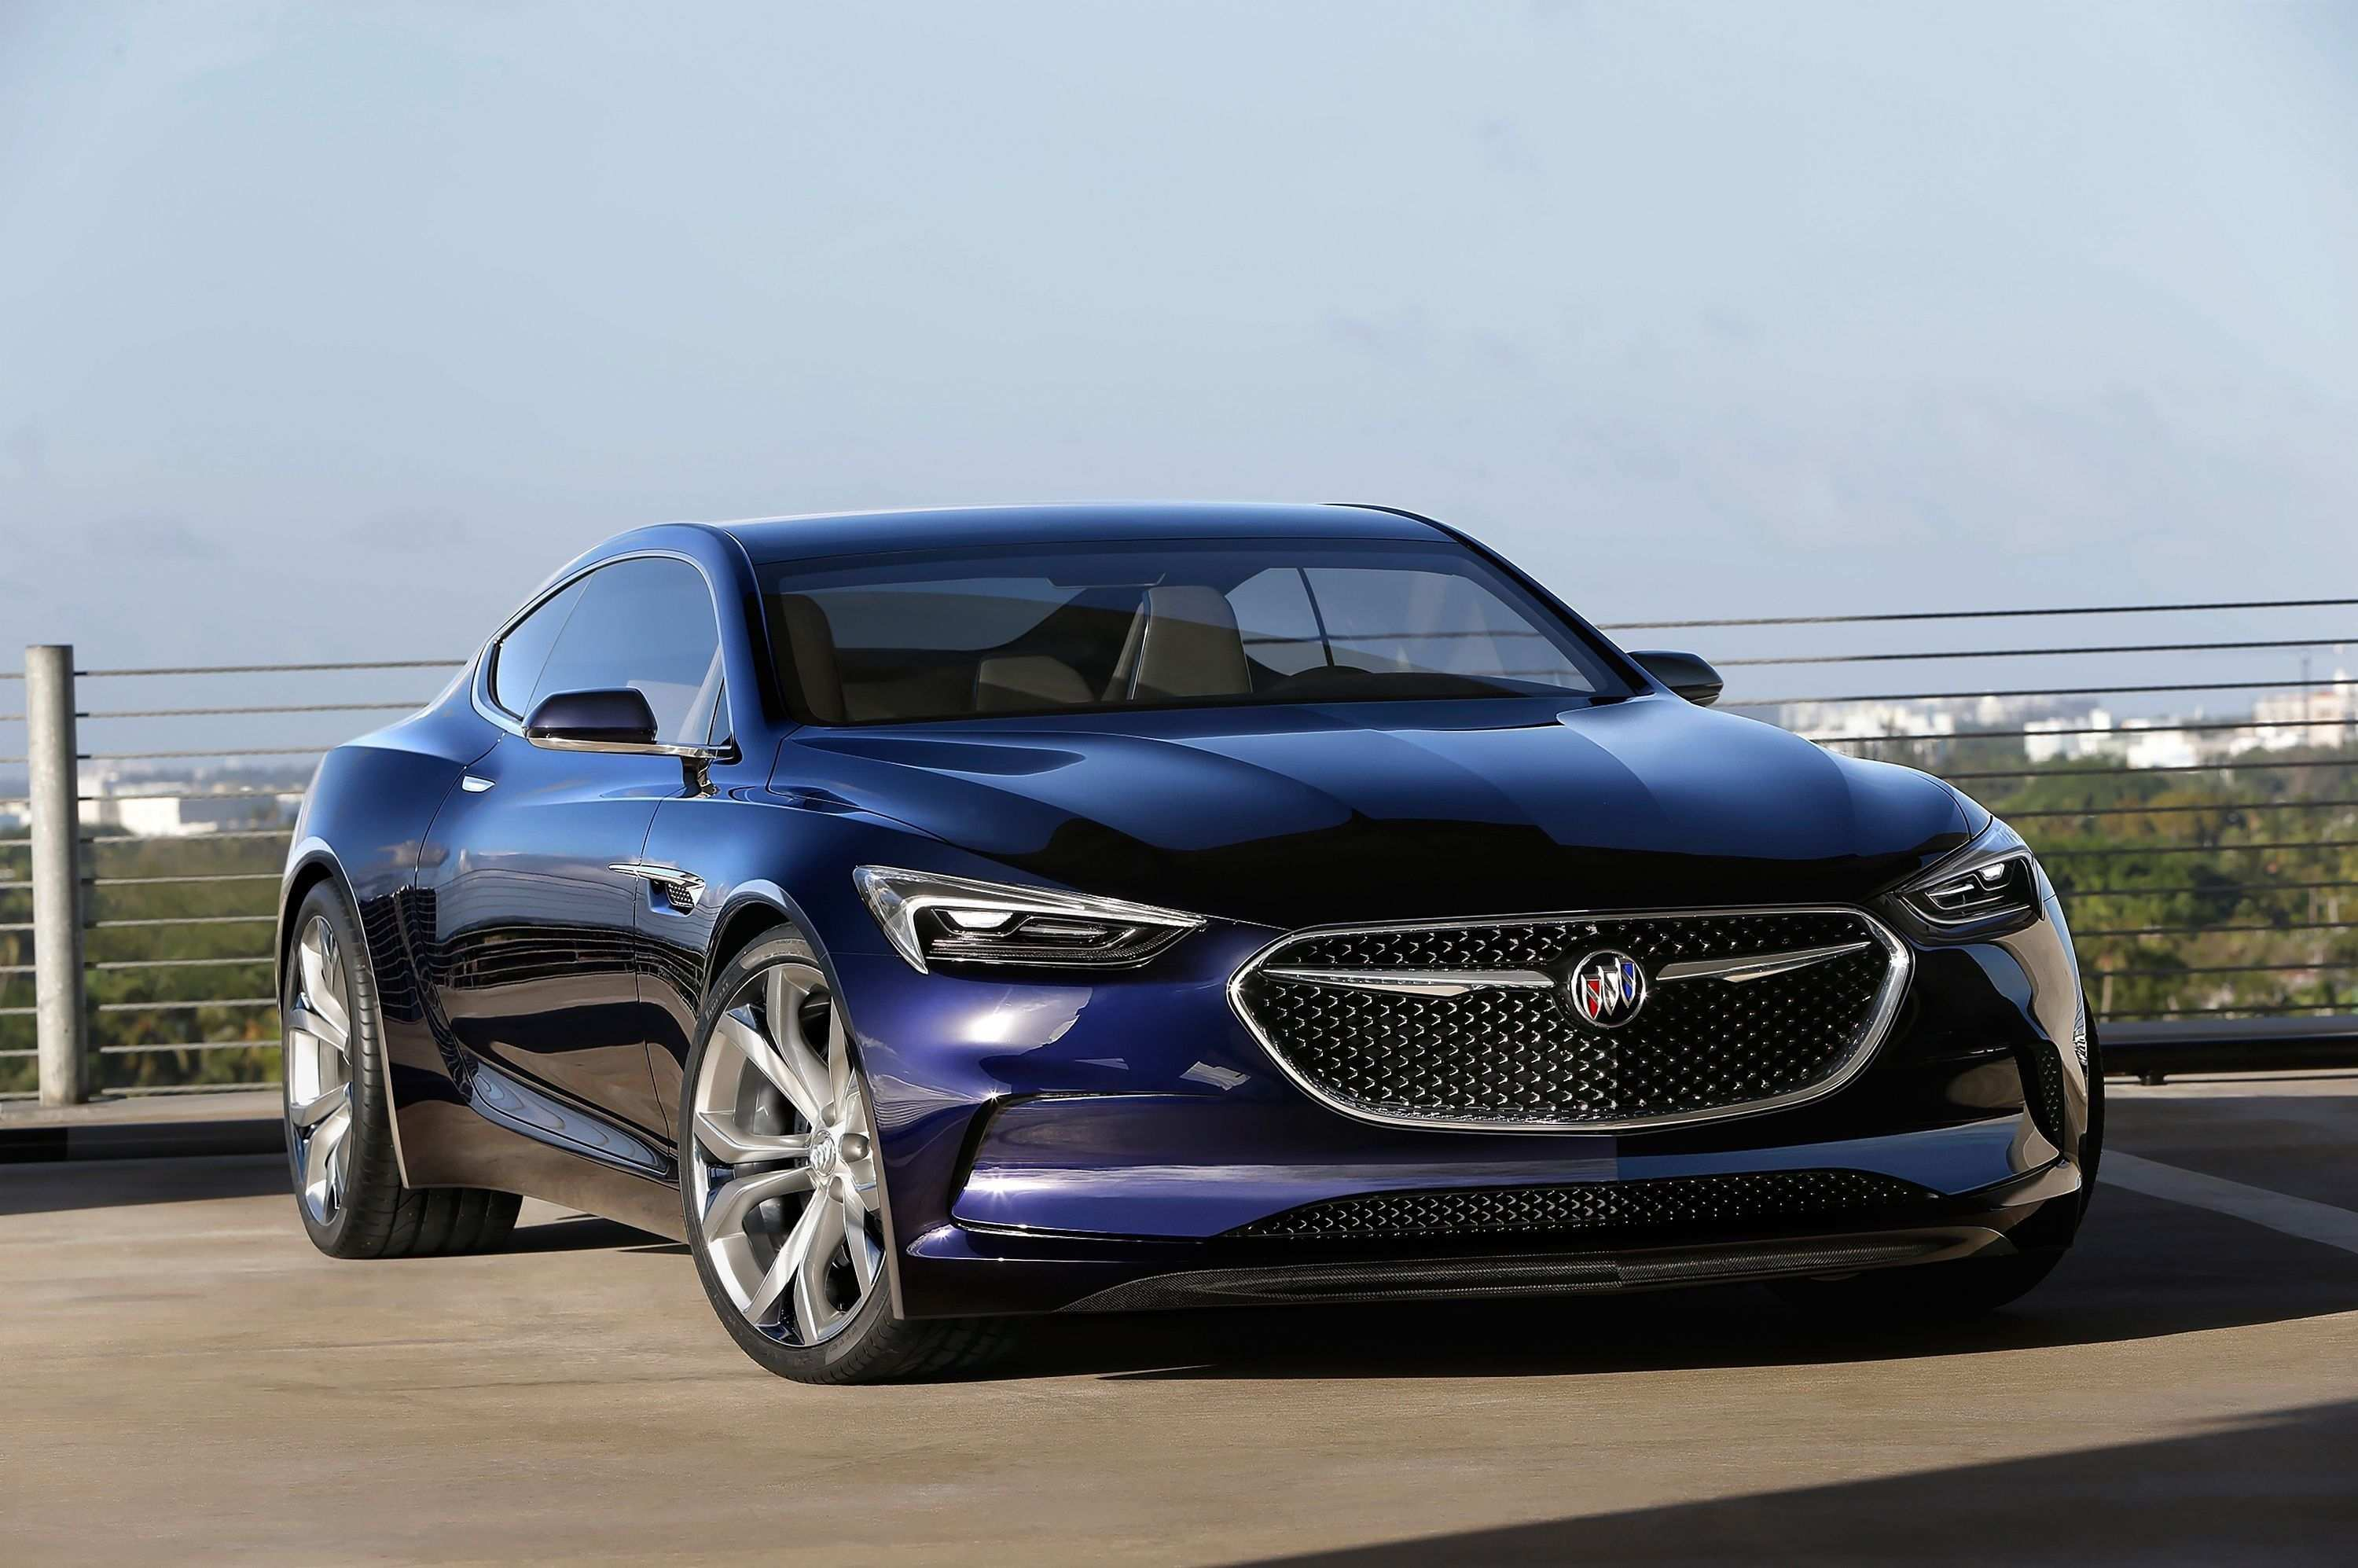 28 Great 2020 Buick Regal Gs Coupe History for 2020 Buick Regal Gs Coupe